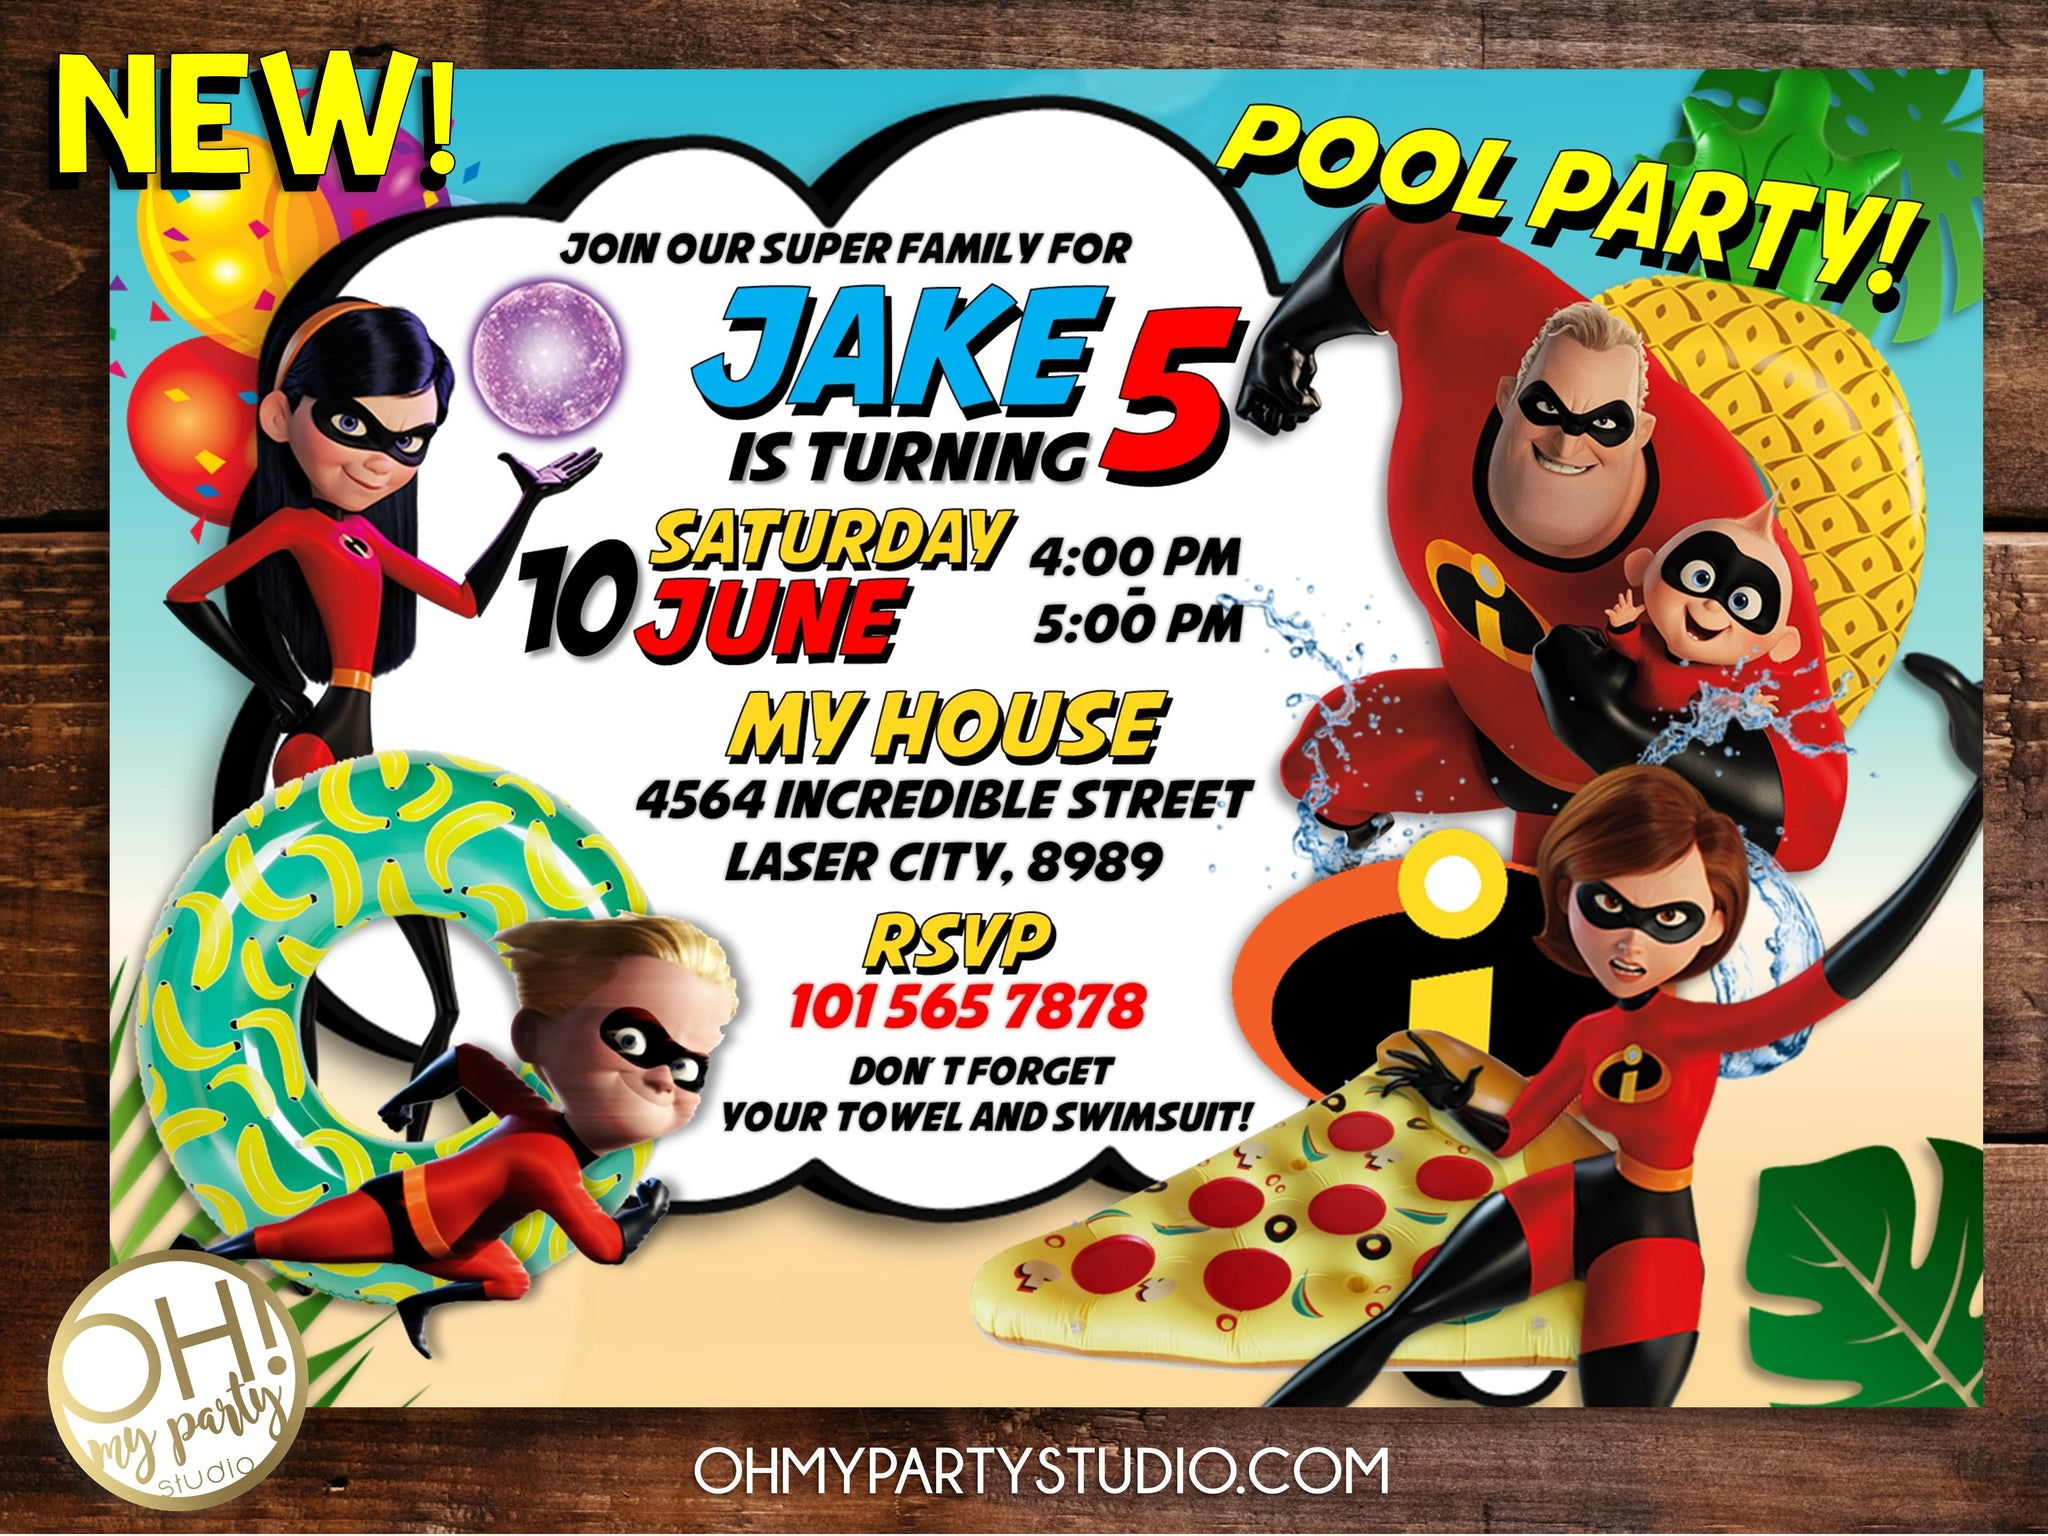 THE INCREDIBLES BIRTHDAY PARTY, THE INCREDIBLES BIRTHDAY INVITATION, THE INCREDIBLES PARTY IDEAS, THE INCREDIBLES PARTY SIBLINGS, THE INCREDIBLES SIBLINGS INVITATION, THE INCREDIBLES PARTY, THE INCREDIBLES BIRTHDAY, THE INCREDIBLES BIRTHDAY PARTY, THE INCREDIBLES PARTY SUPPLIES, THE INCREDIBLES DIGITAL INVITATION, THE INCREDIBLES PARTY PRINTABLES, THE INCREDIBLES INVITE